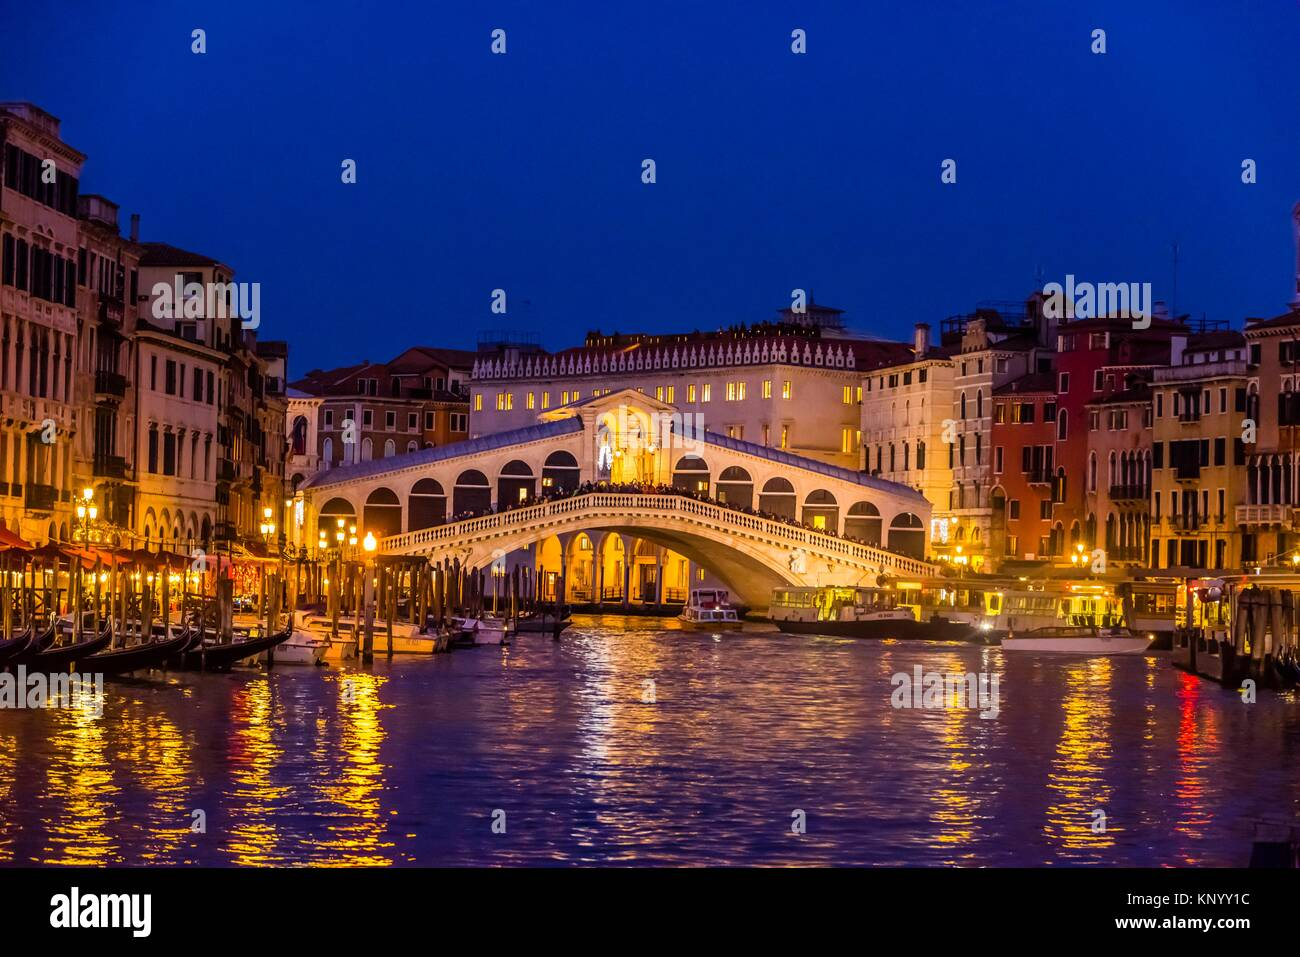 Rialto Bridge, Grand Canal, Venice, Italy. - Stock Image